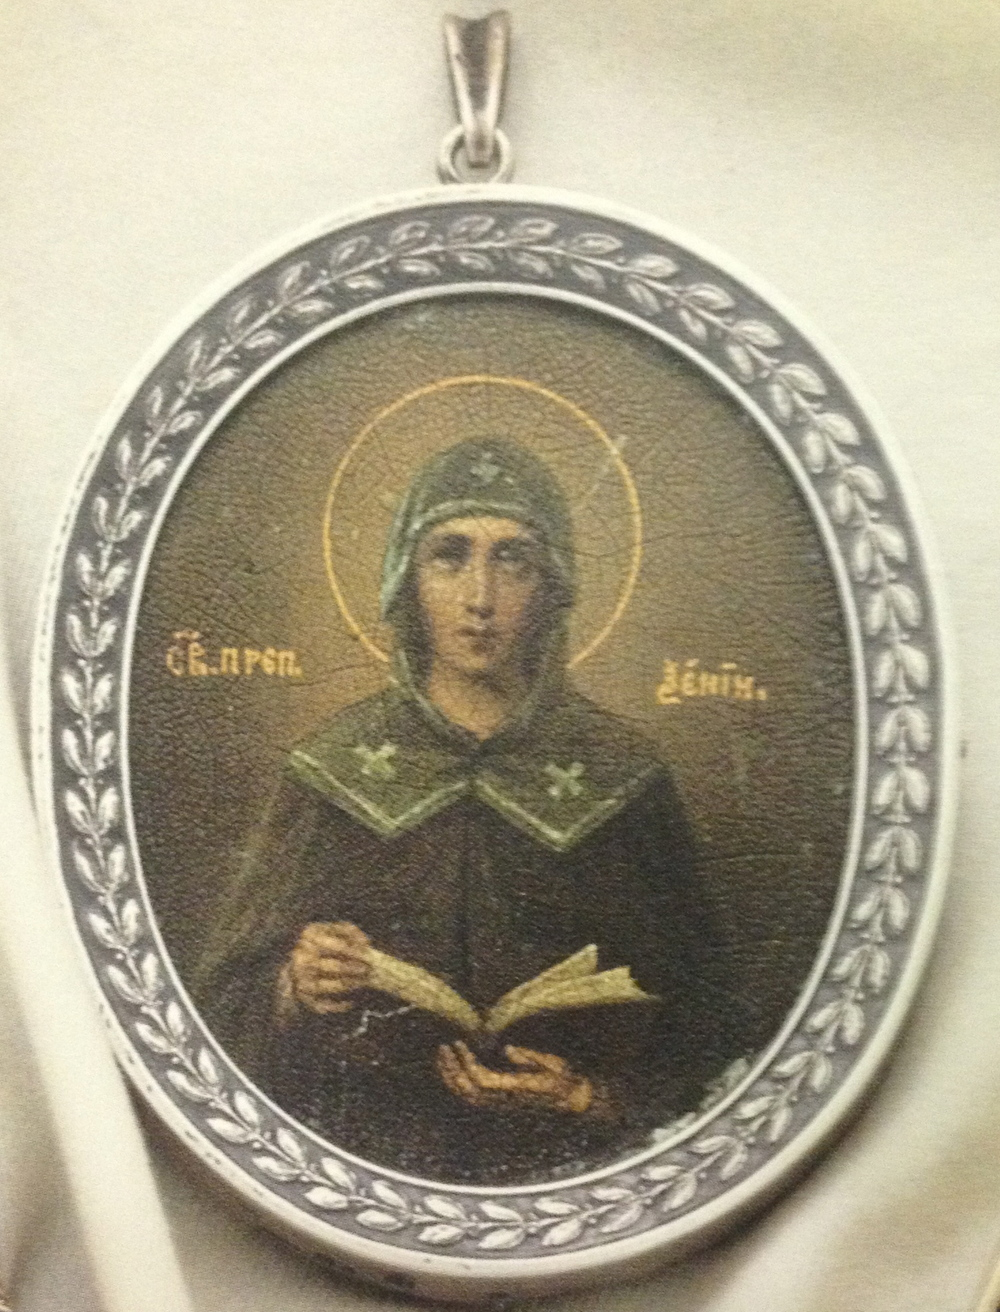 An icon of St. Ksenia by Fabergé, from the collection of Grand Duchess Ksenia Alexandrovna and sold by her descendants for $47,500 at Christie's